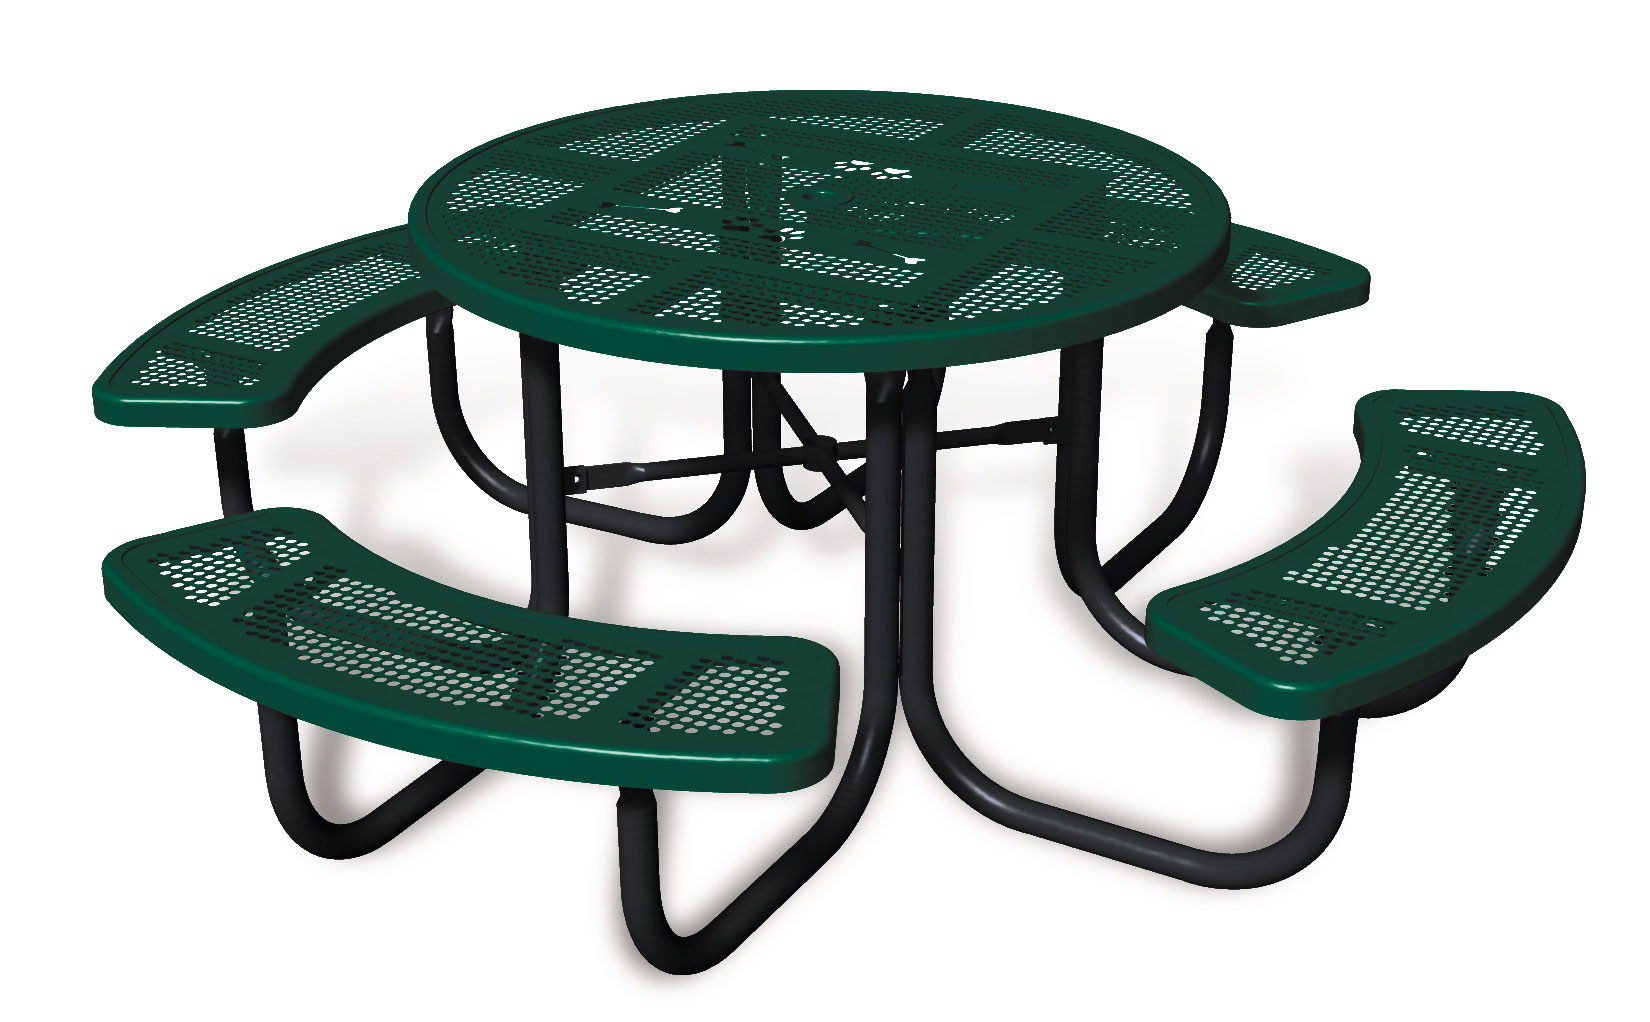 Dog Park Picnic Table